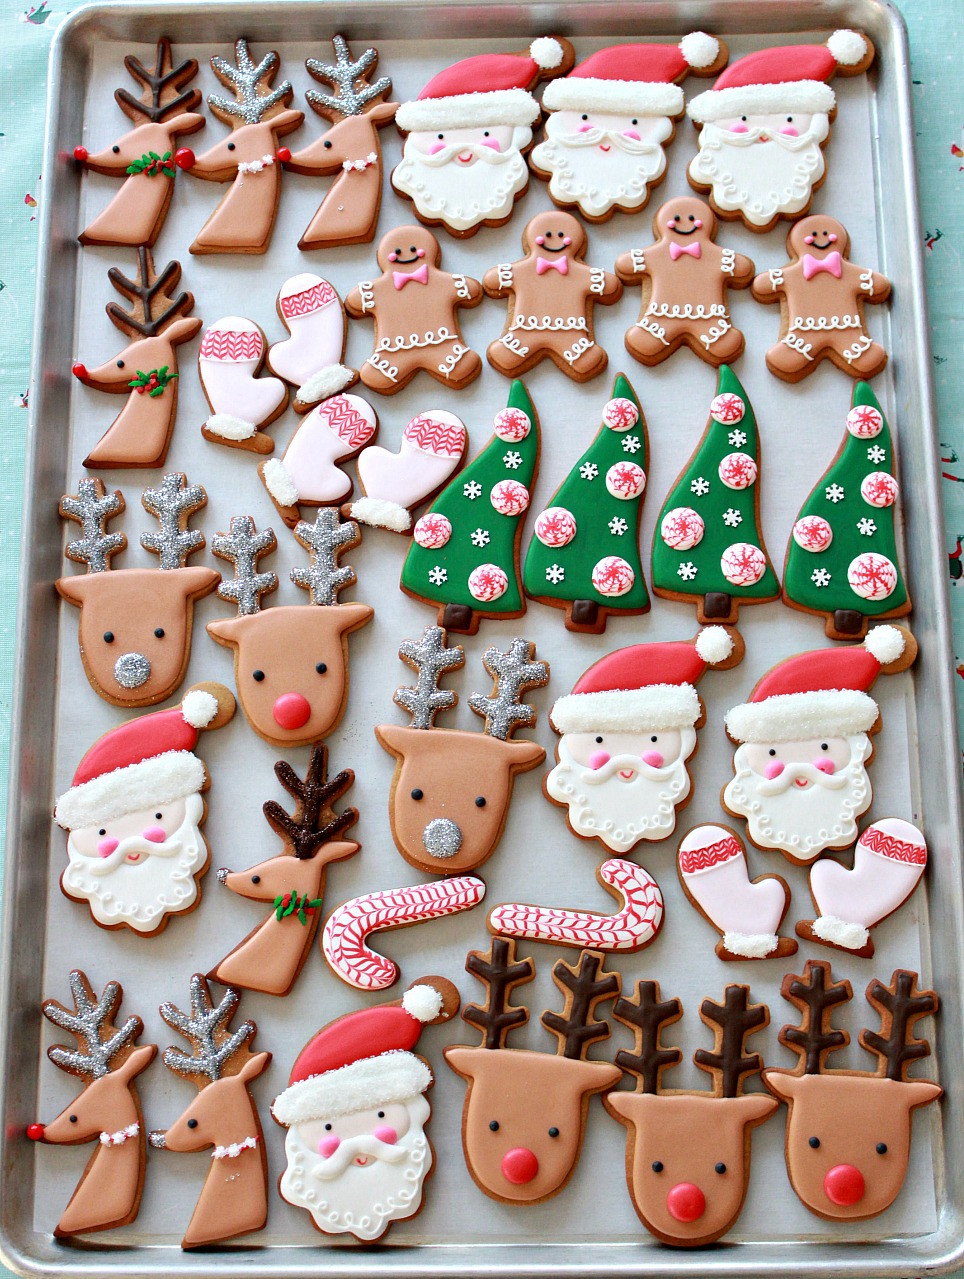 Christmas Cookies Decorated  Video How to Decorate Christmas Cookies Simple Designs